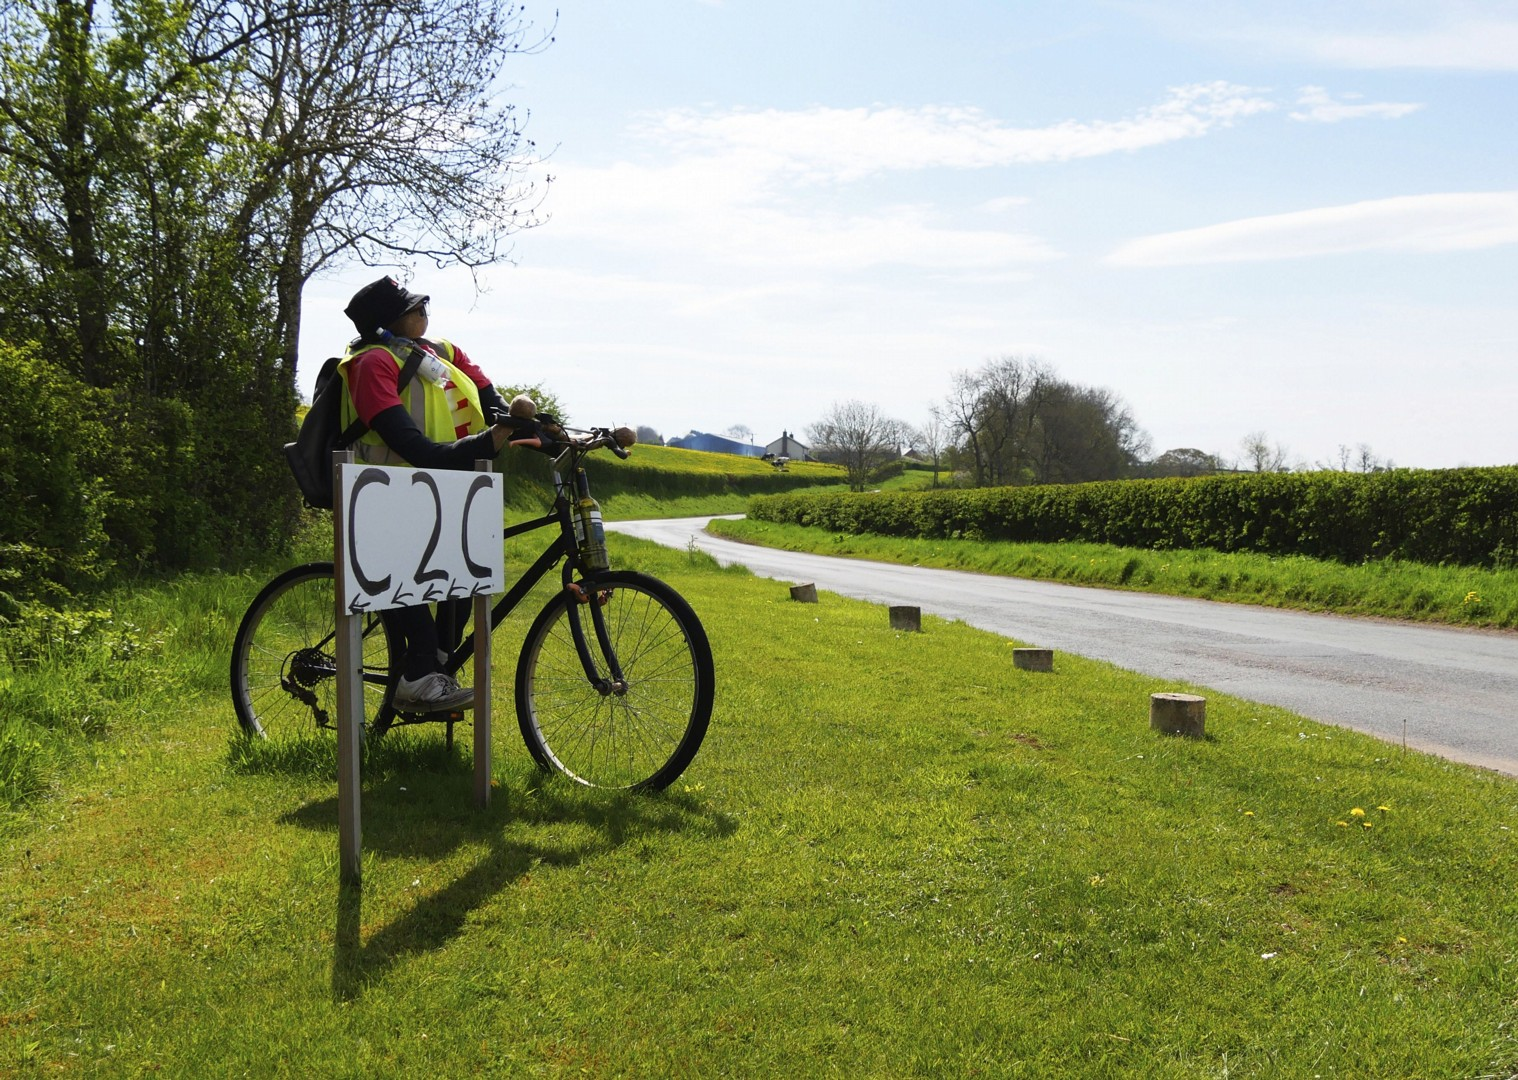 cycling-holiday-c2c-cumbria-landscape.jpg - UK - C2C - Coast to Coast 5 Days Cycling - Self-Guided Leisure Cycling Holiday - Leisure Cycling